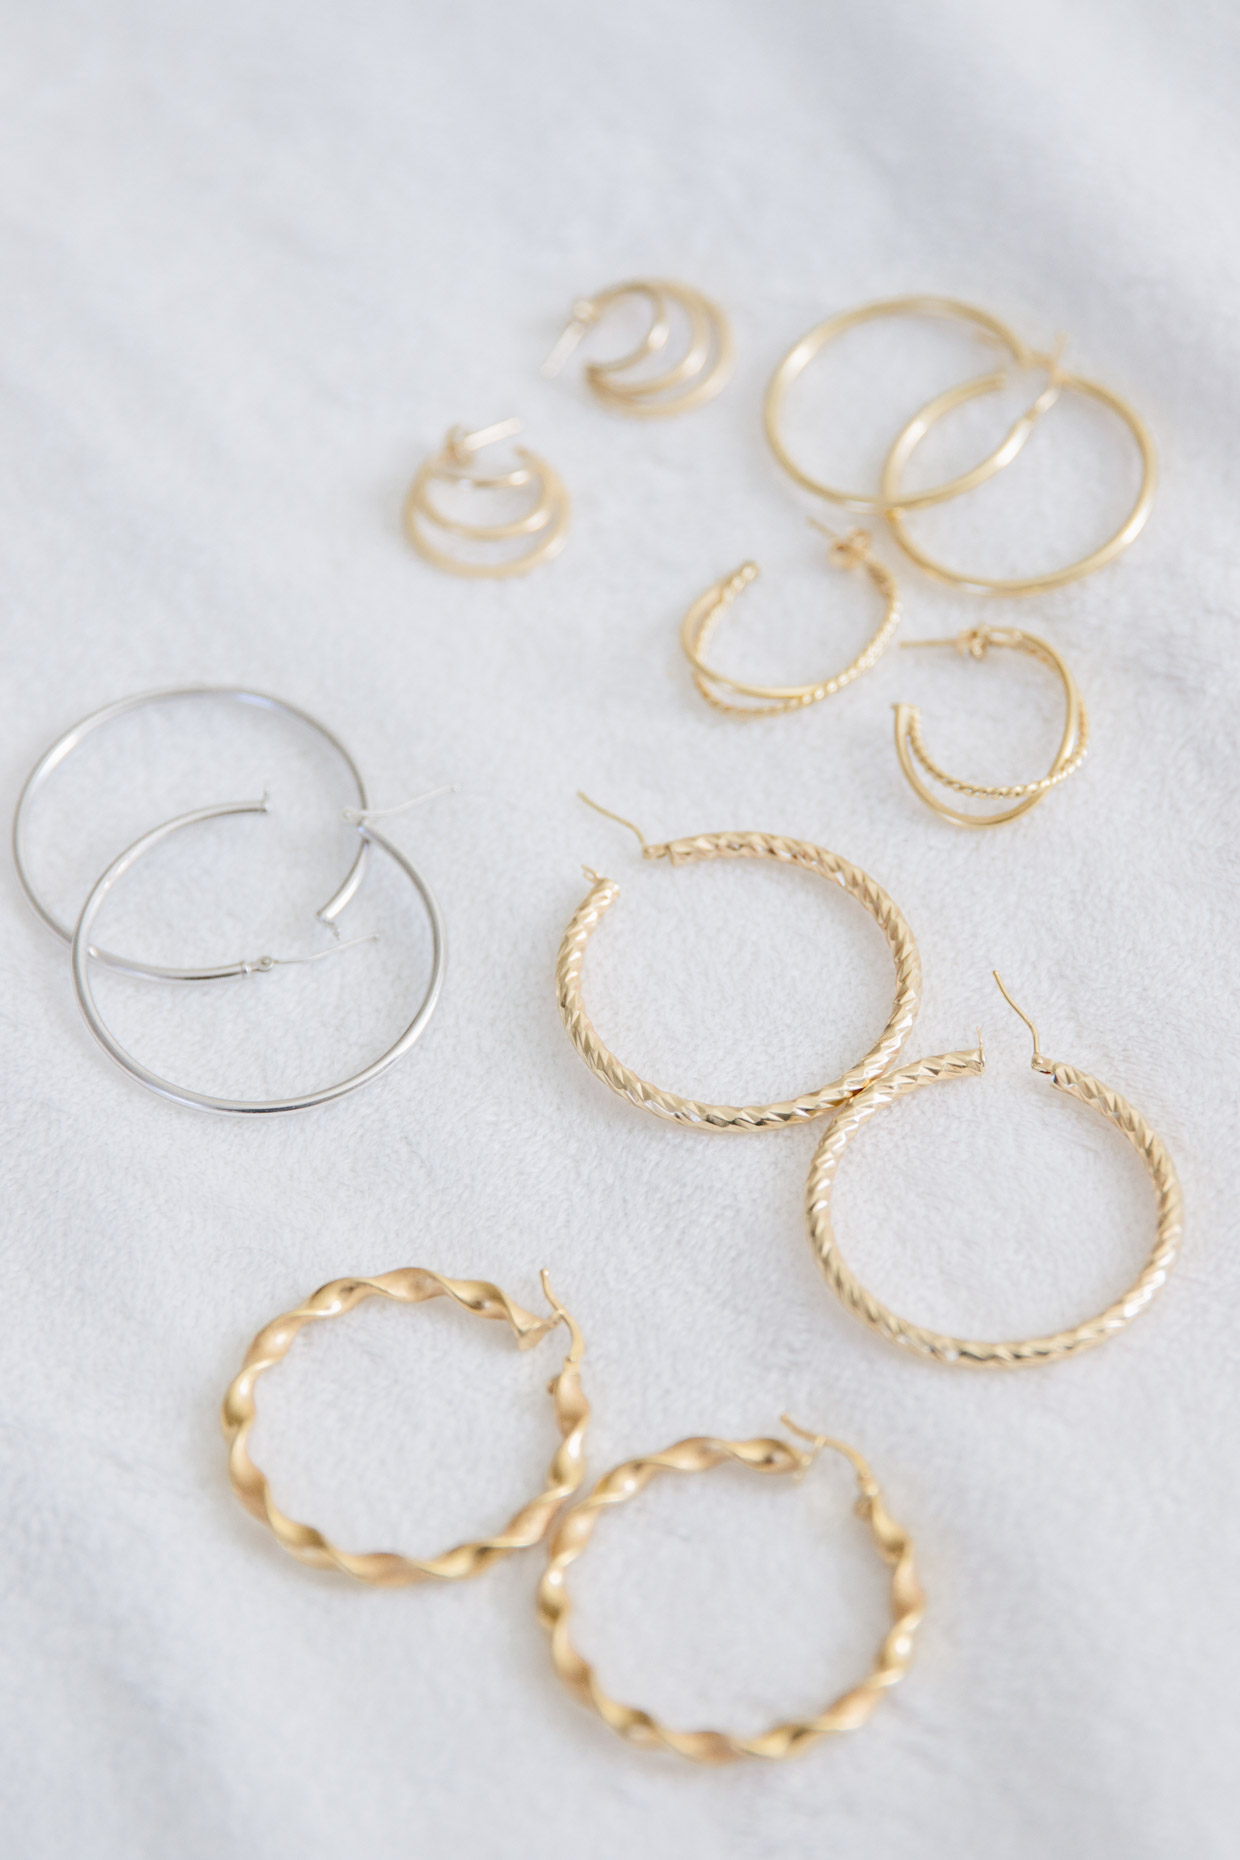 Meagan Brandon fashion blogger of Meagan's Moda shares classic gold hoop earrings and where to shop for them